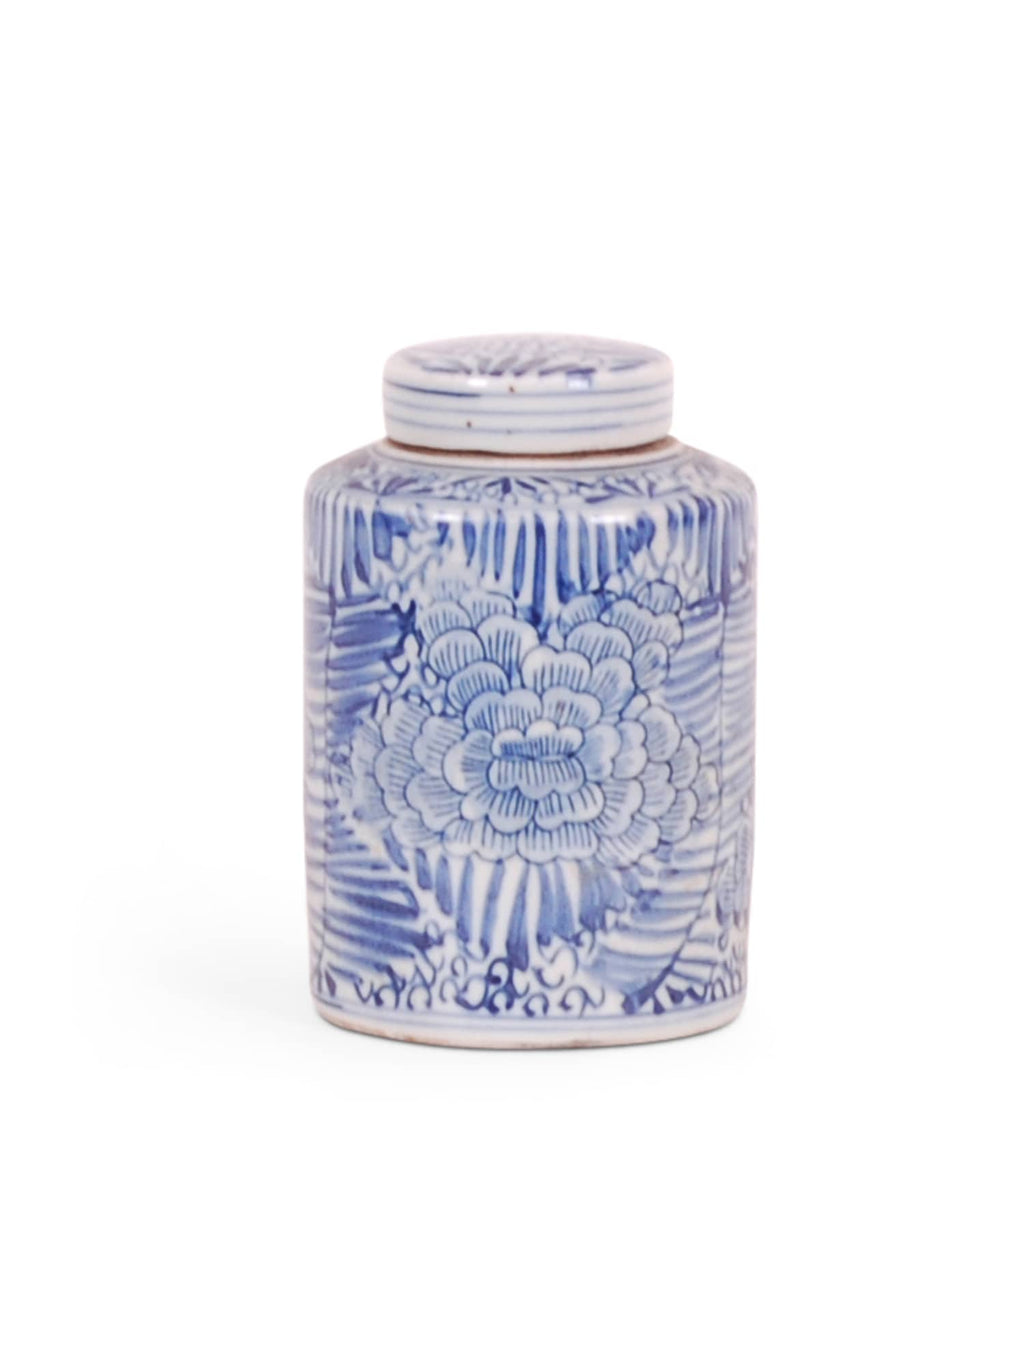 Blue and White Jar with Palm and Floral